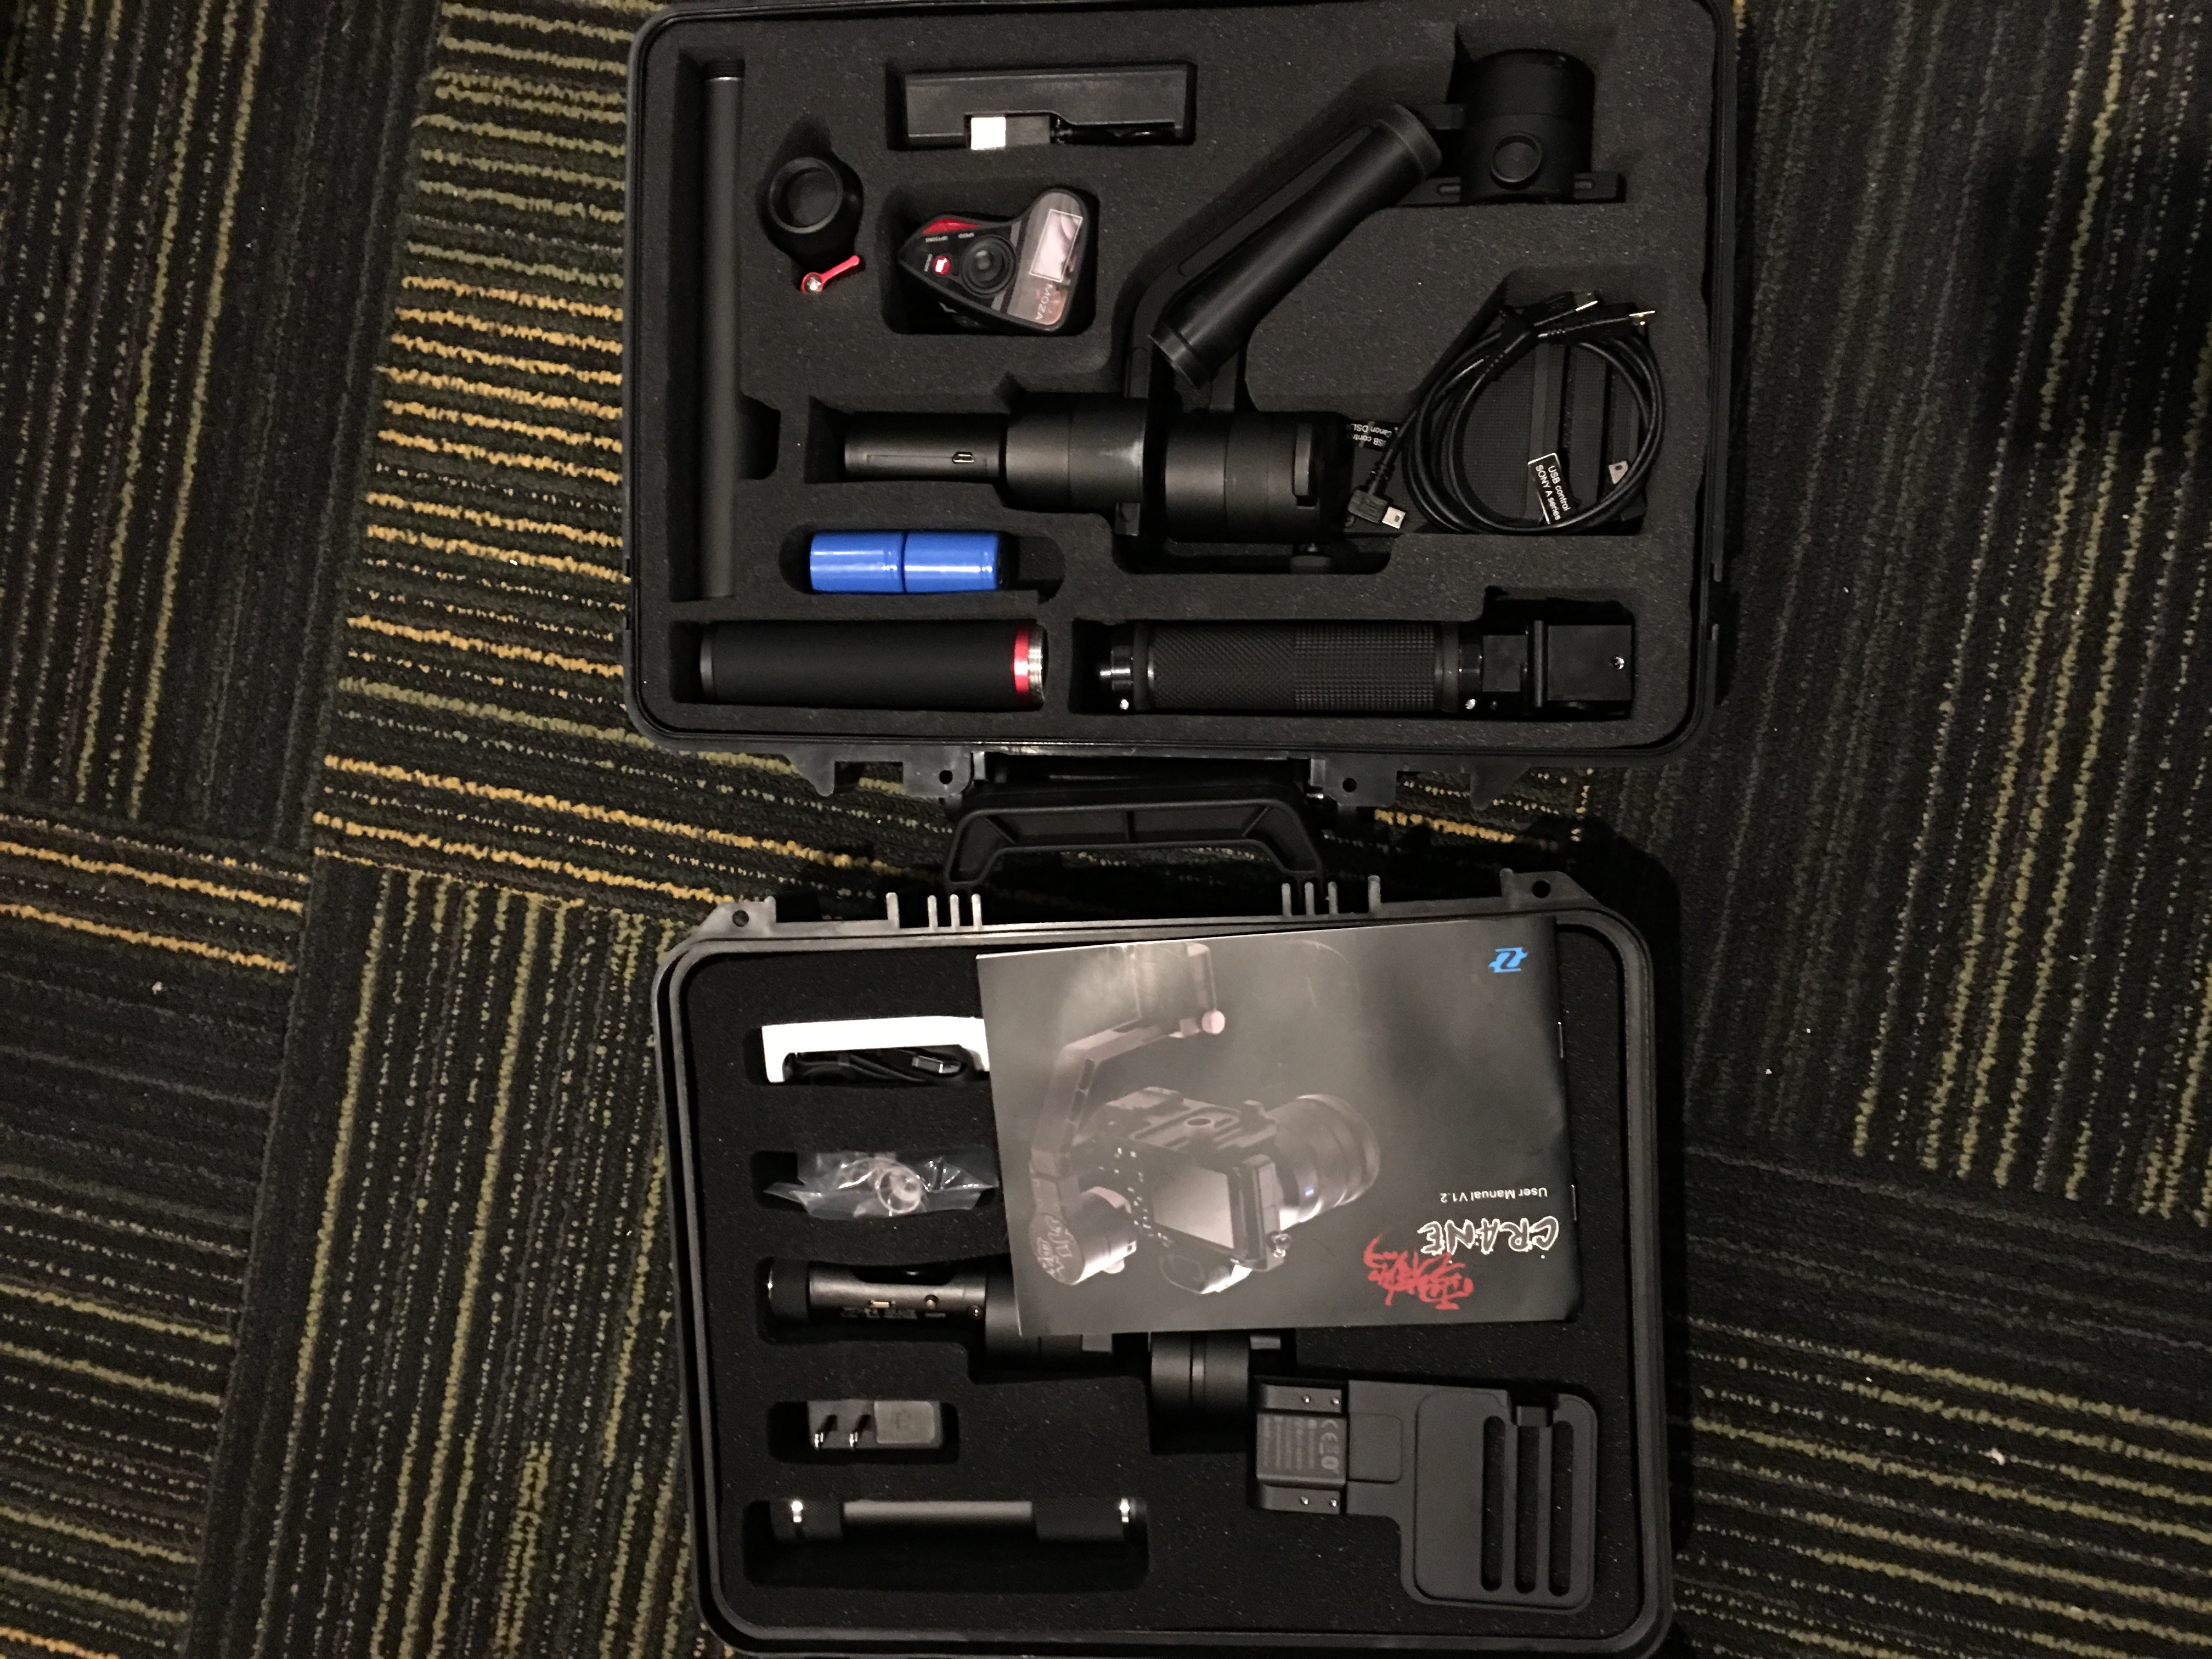 Gudsen Moza Air Vs Zhiyun Crane Media Design Imaging Z1 Ver 20 3 Axis Stabilizer For Mirrorless Camera Both Sells With A Carrying Case Usb Cable Wish They Also Should Consider Offering The To Power Adapter Lens Support Screw And Gimbal